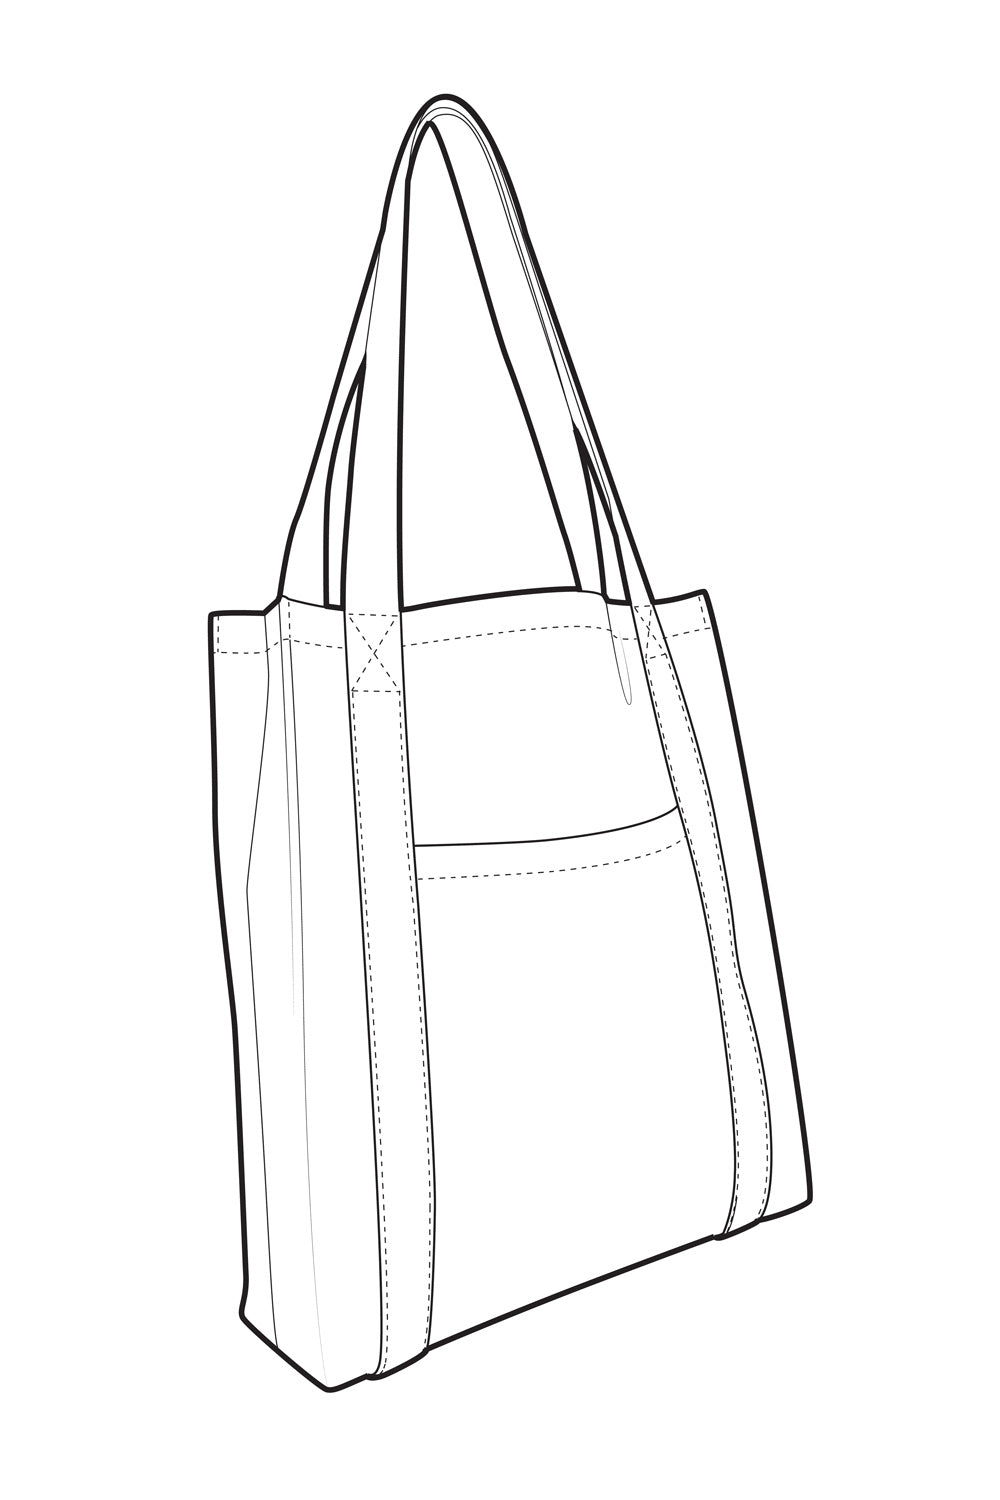 Beginner Sewing Introduction: The Madrid Tote - Victory Patterns